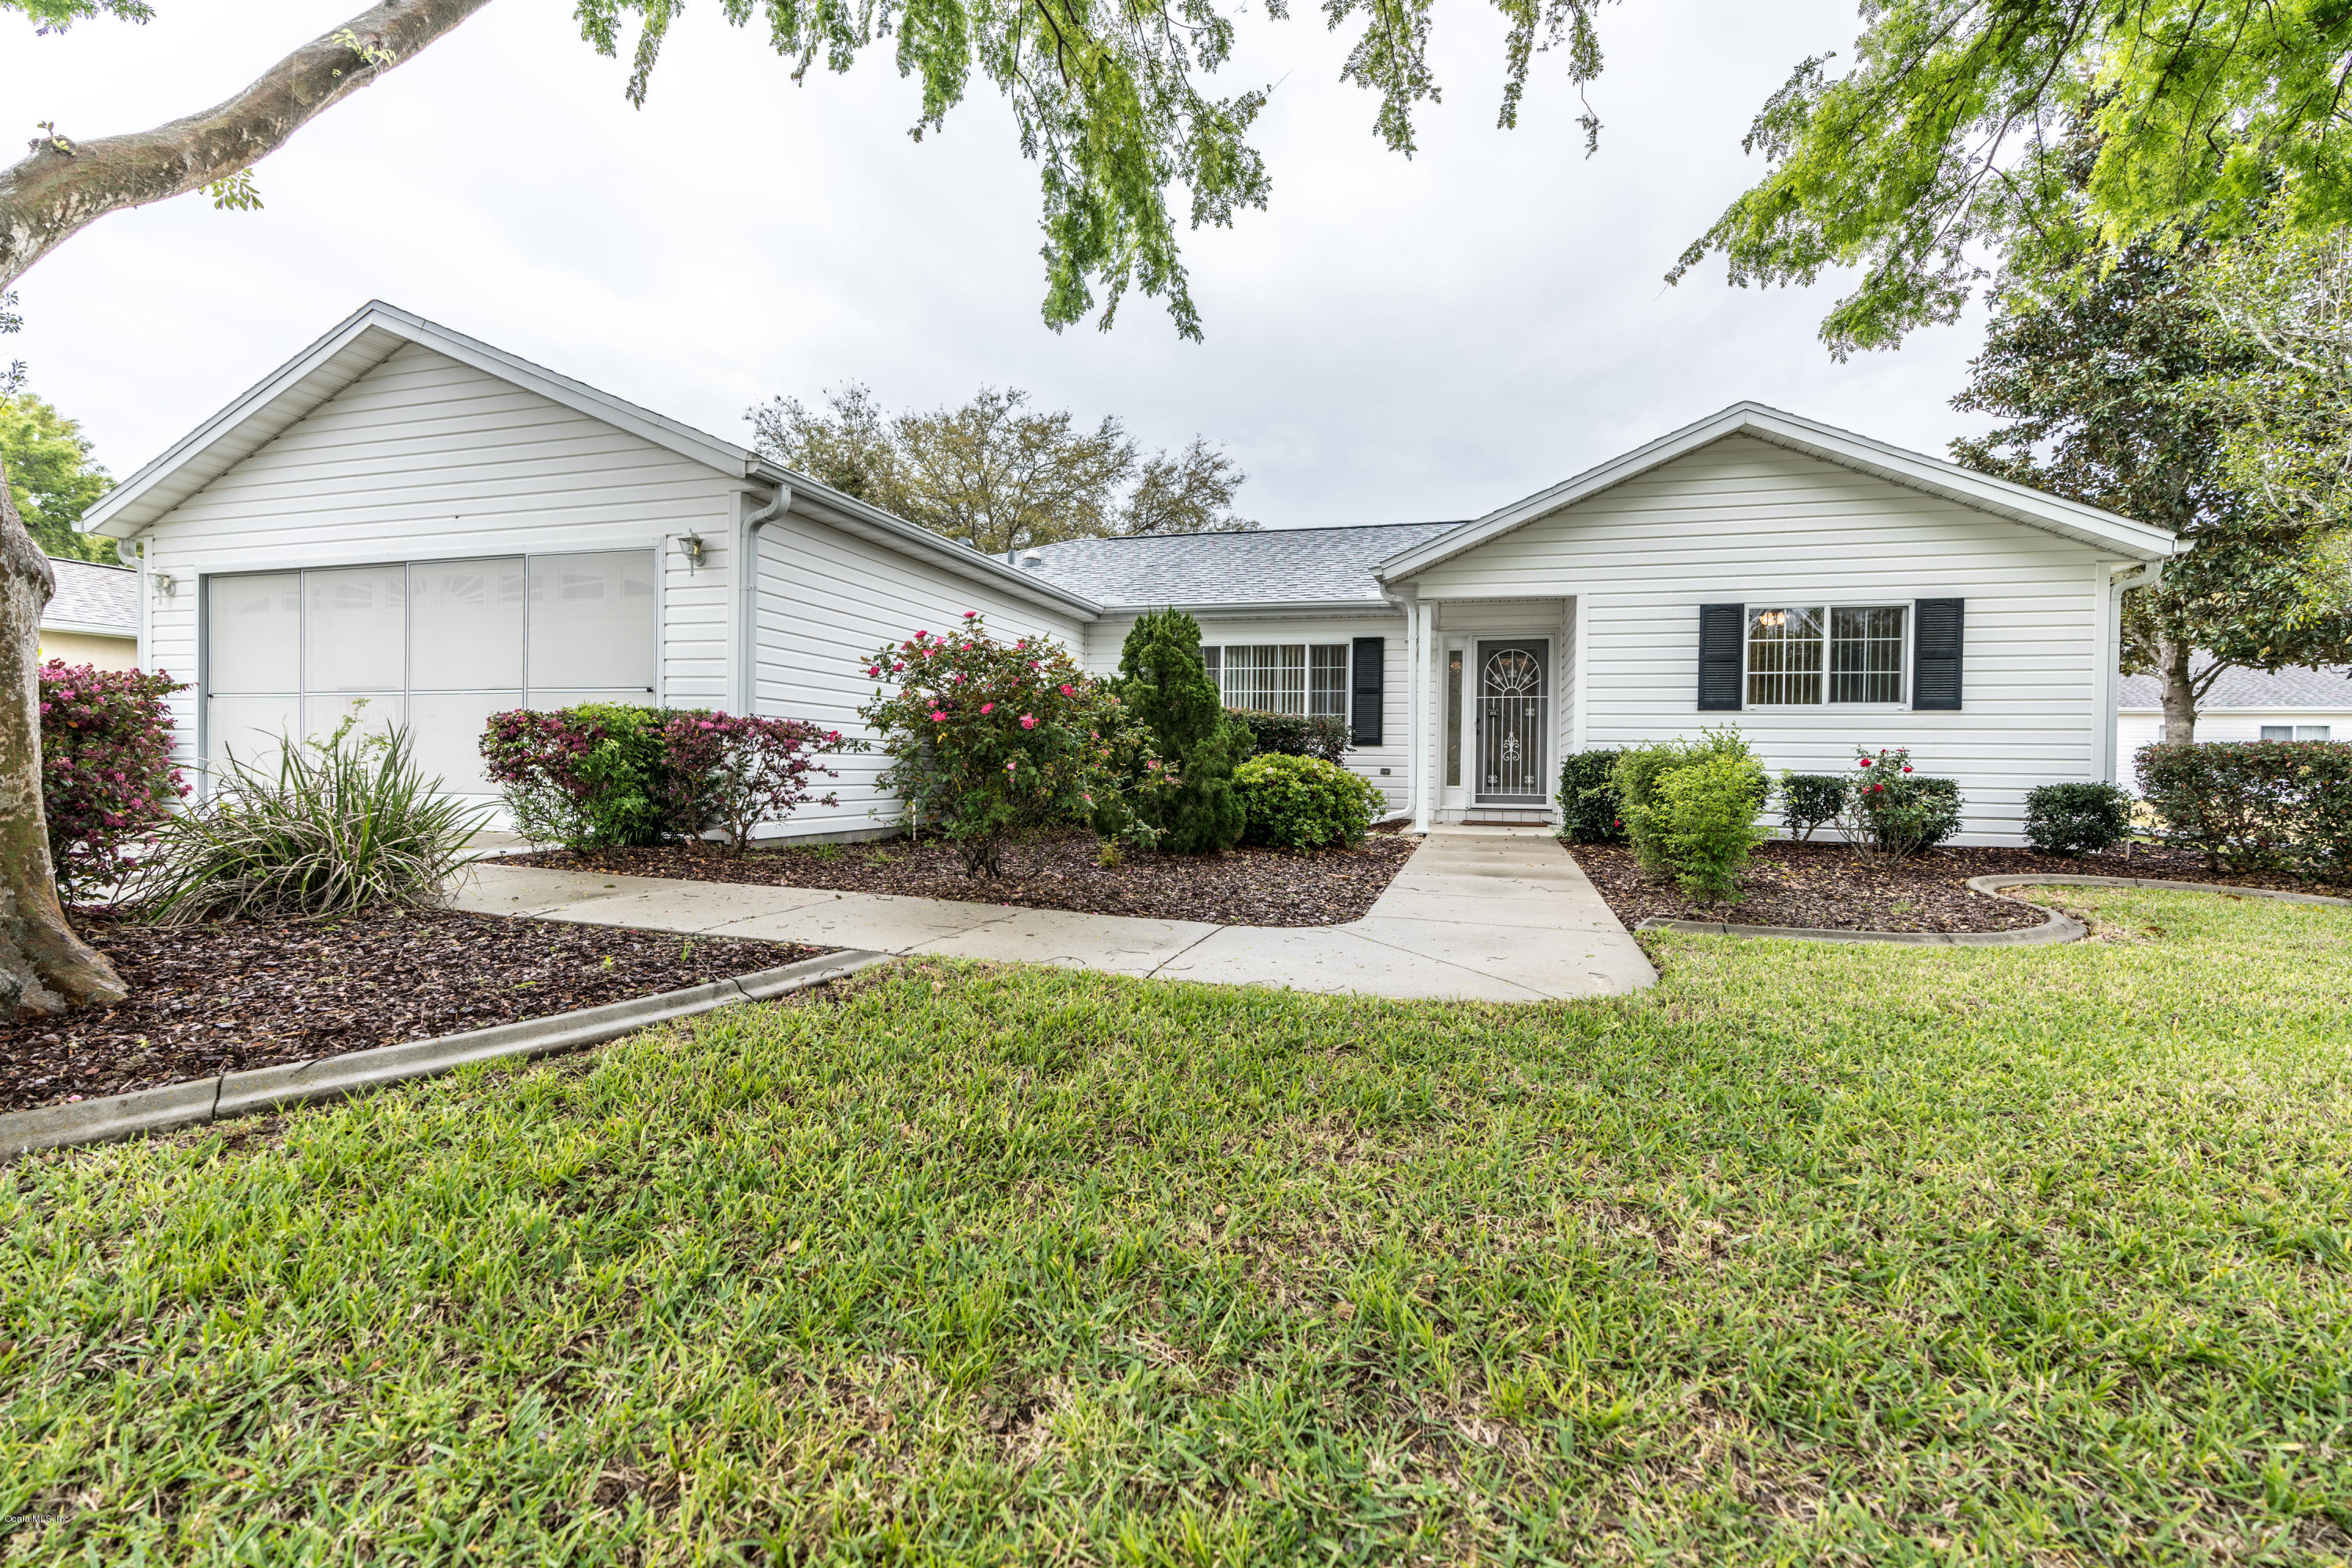 11266 SW 139TH STREET, DUNNELLON, FL 34432